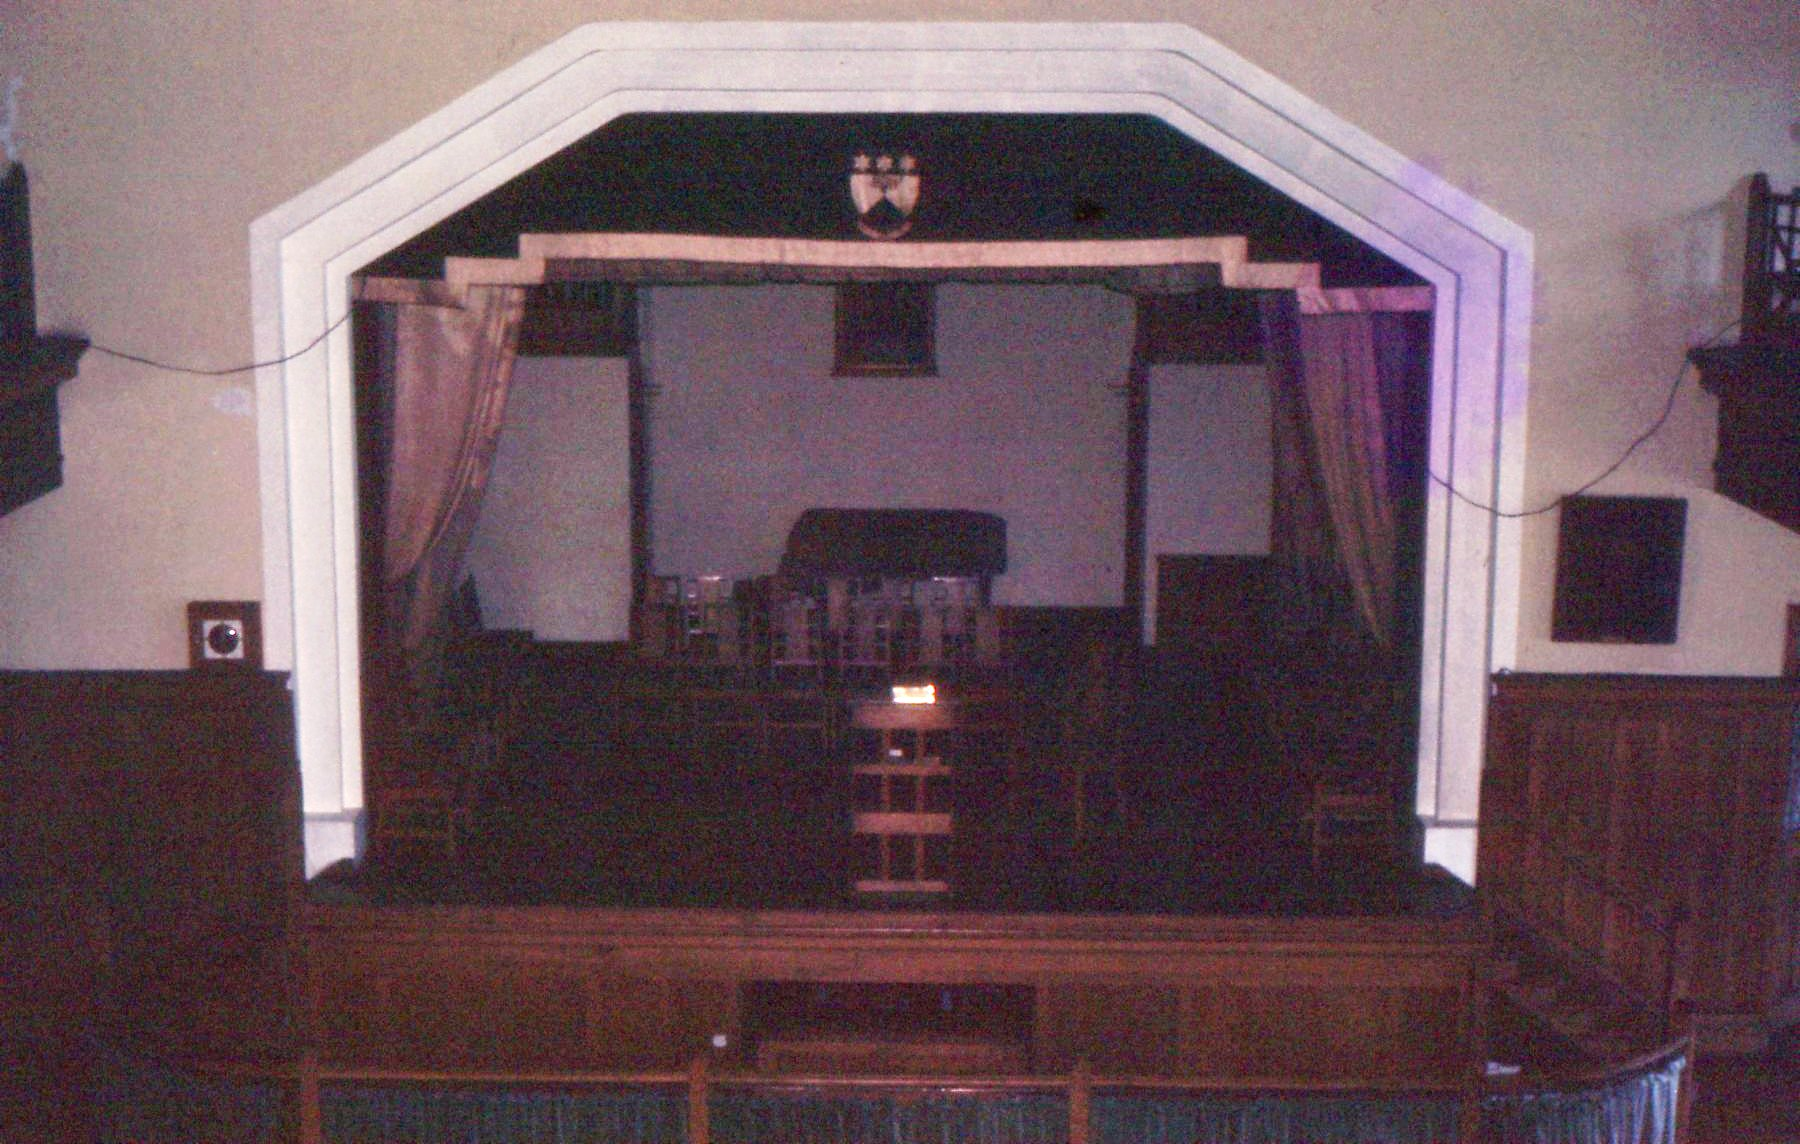 Photograph of school stage, with Bible on a lectern